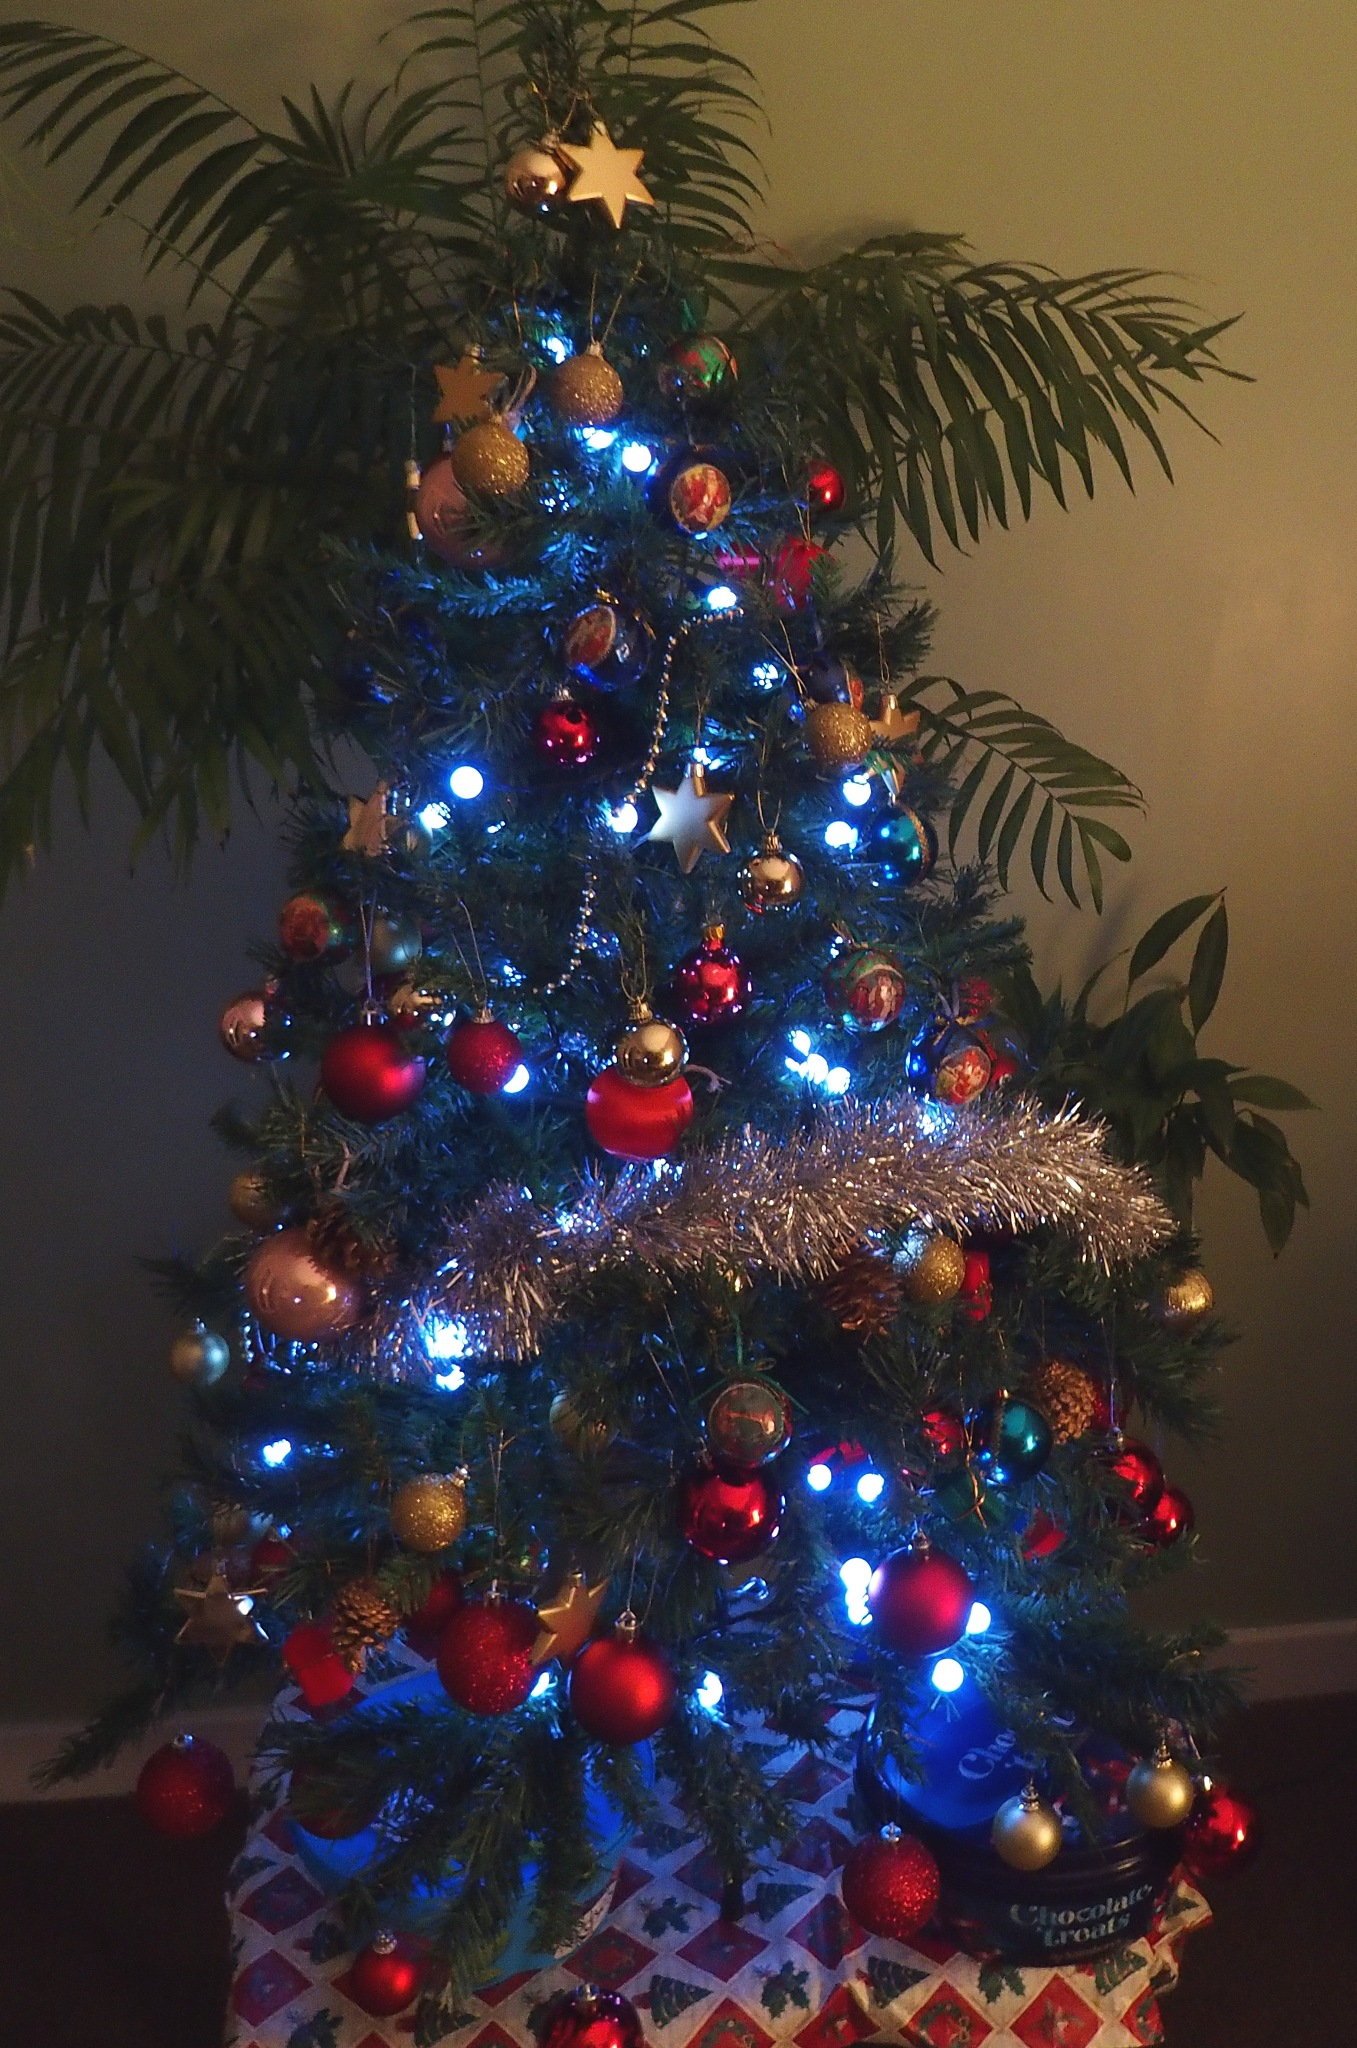 Our tree this Christmas by Terence Quinn